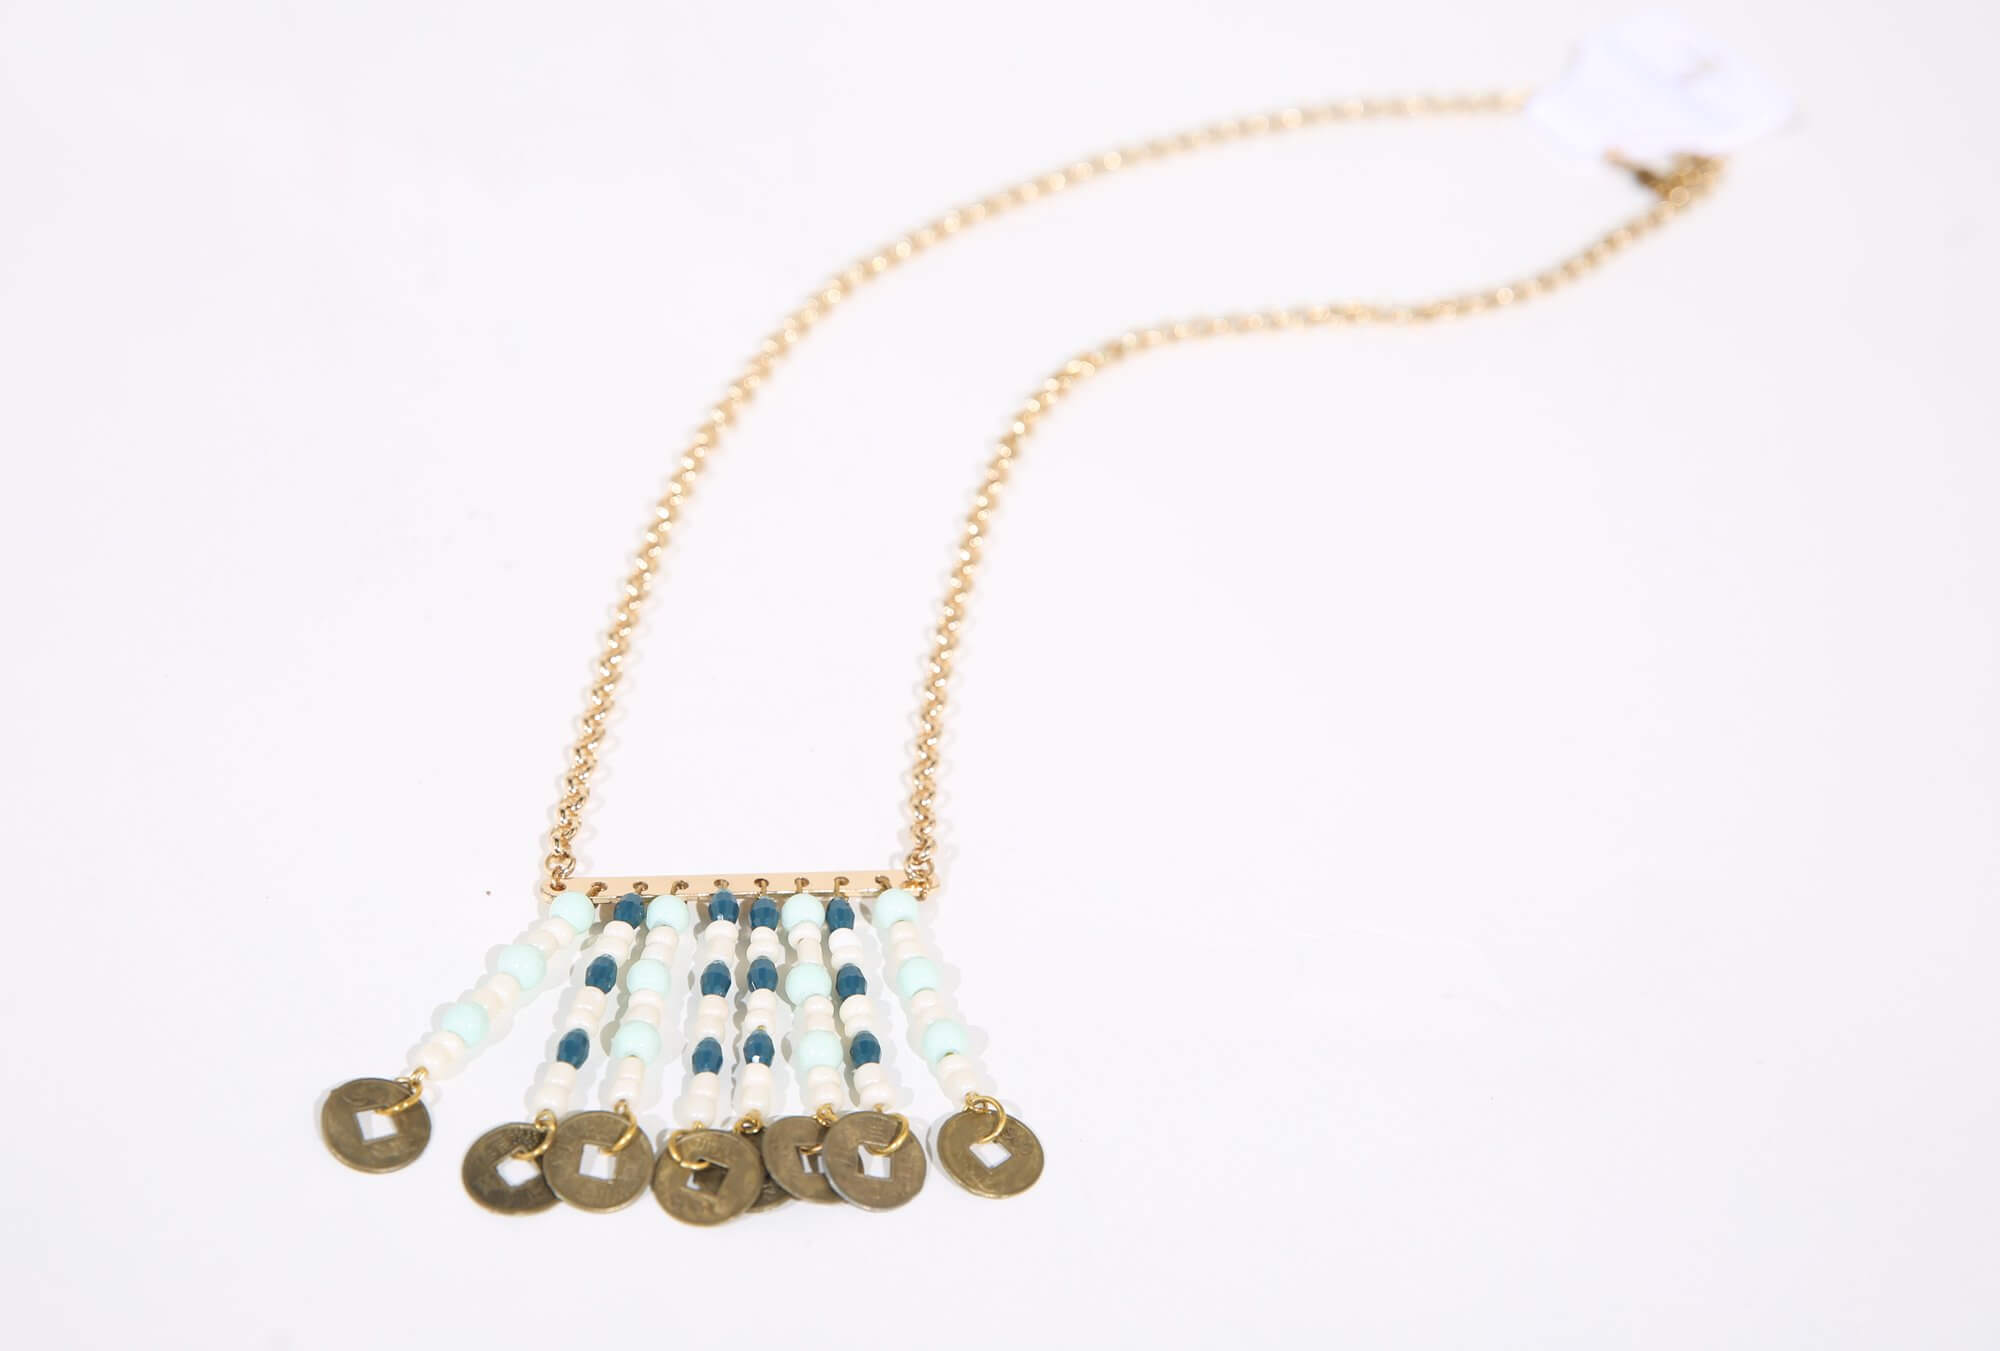 Image of Necklace made from coins